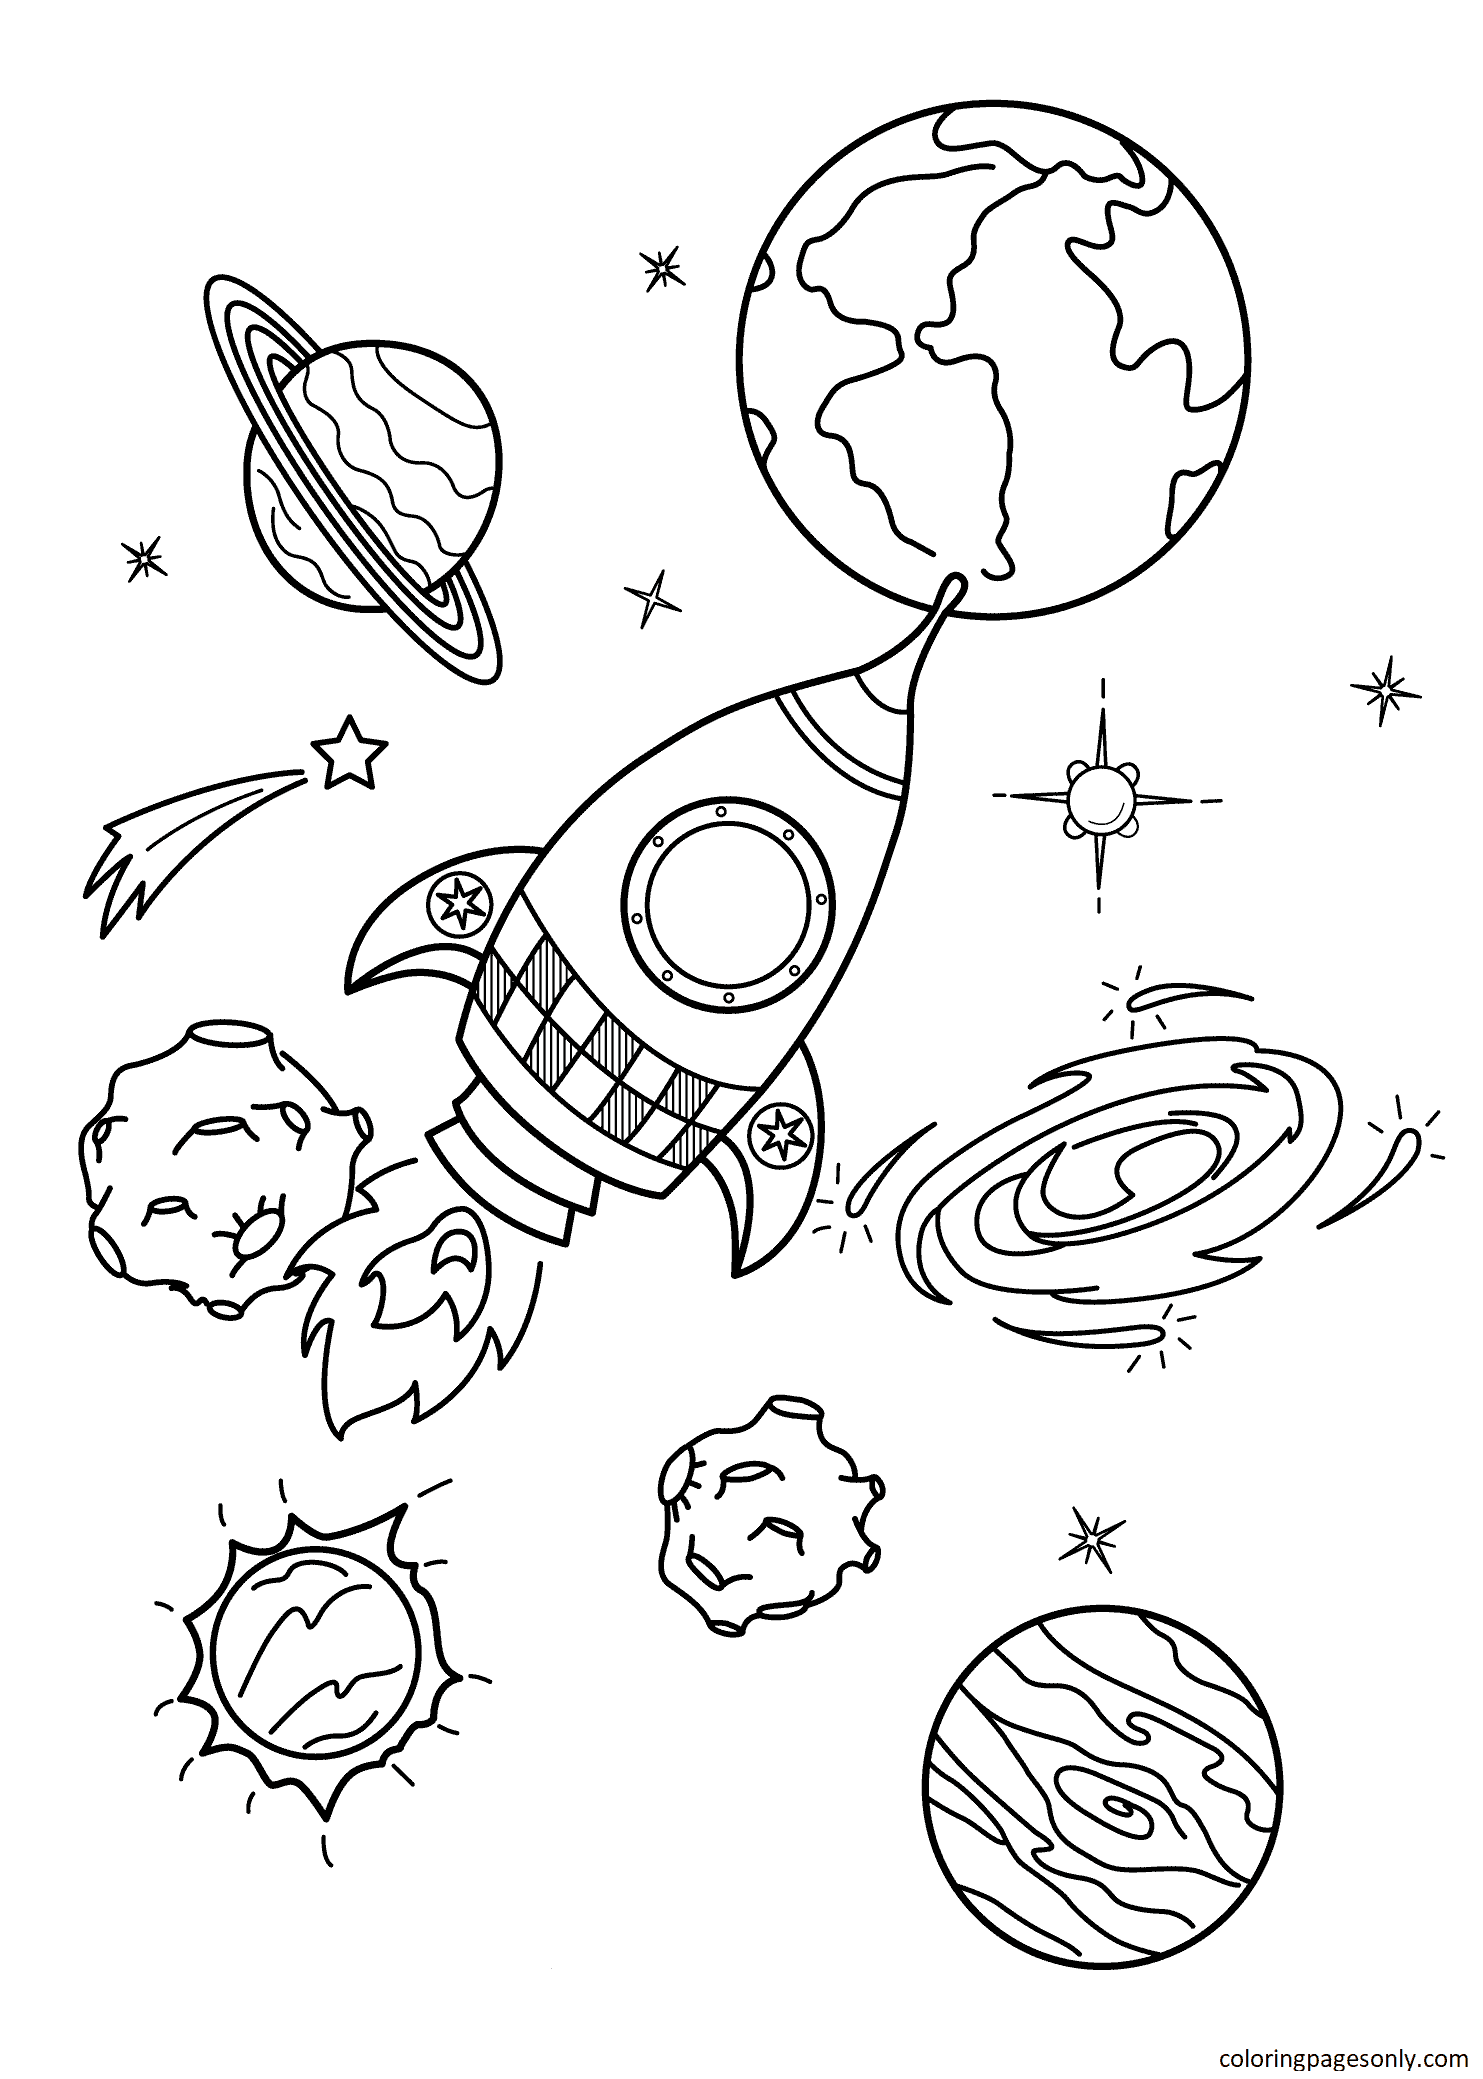 Space Rocket 1 Coloring Page